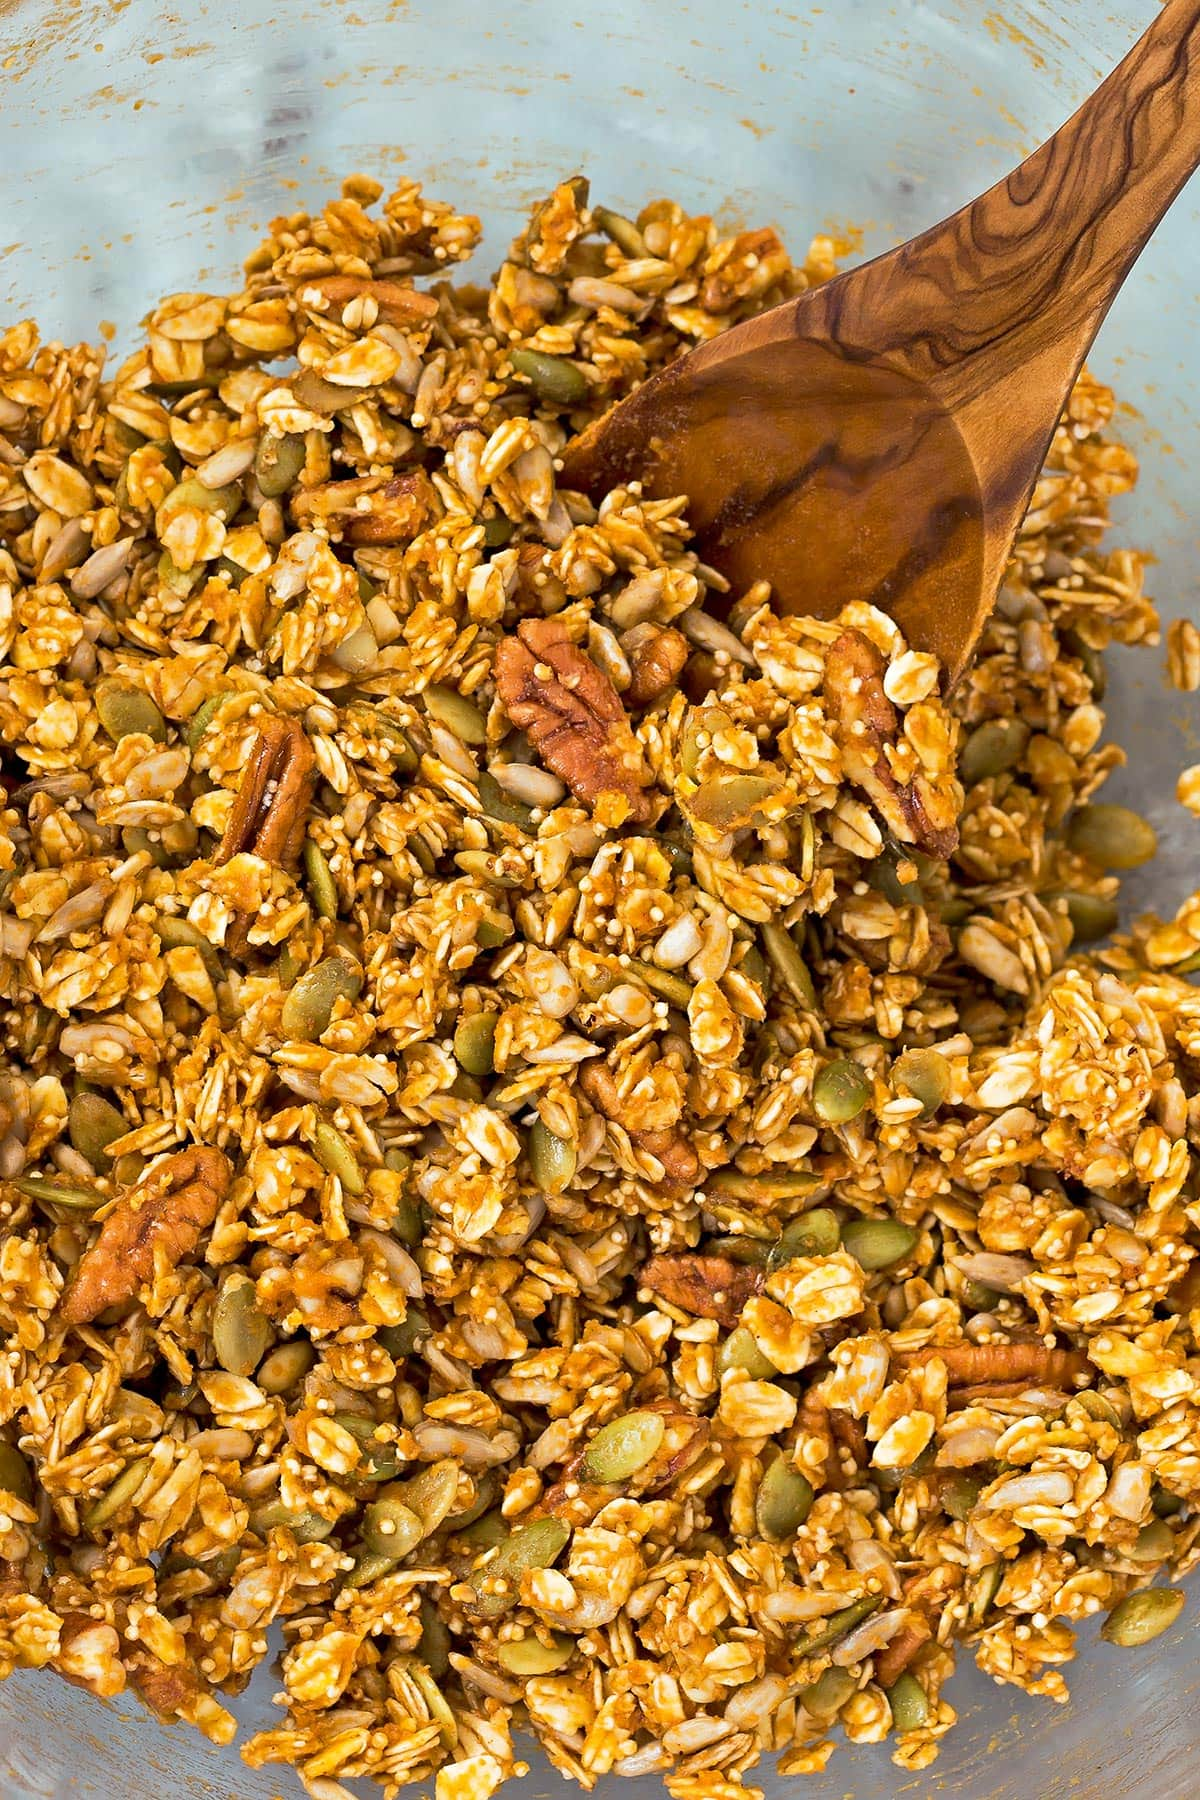 Mixed up pumpkin granola mix